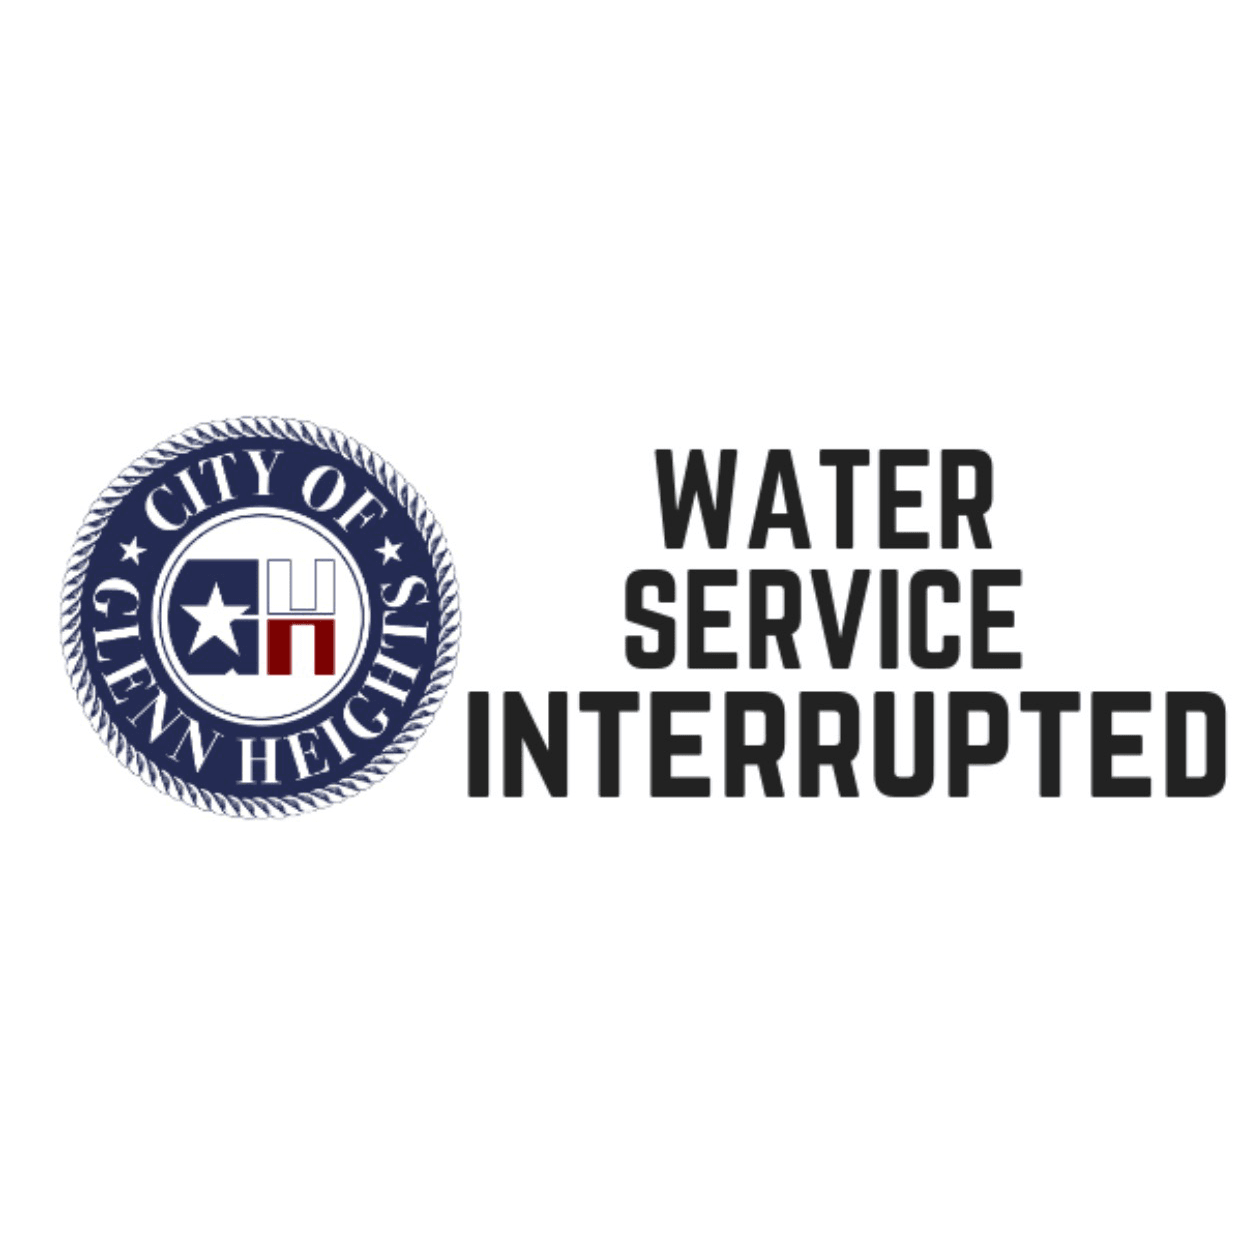 Water Service Interrupted Graphic